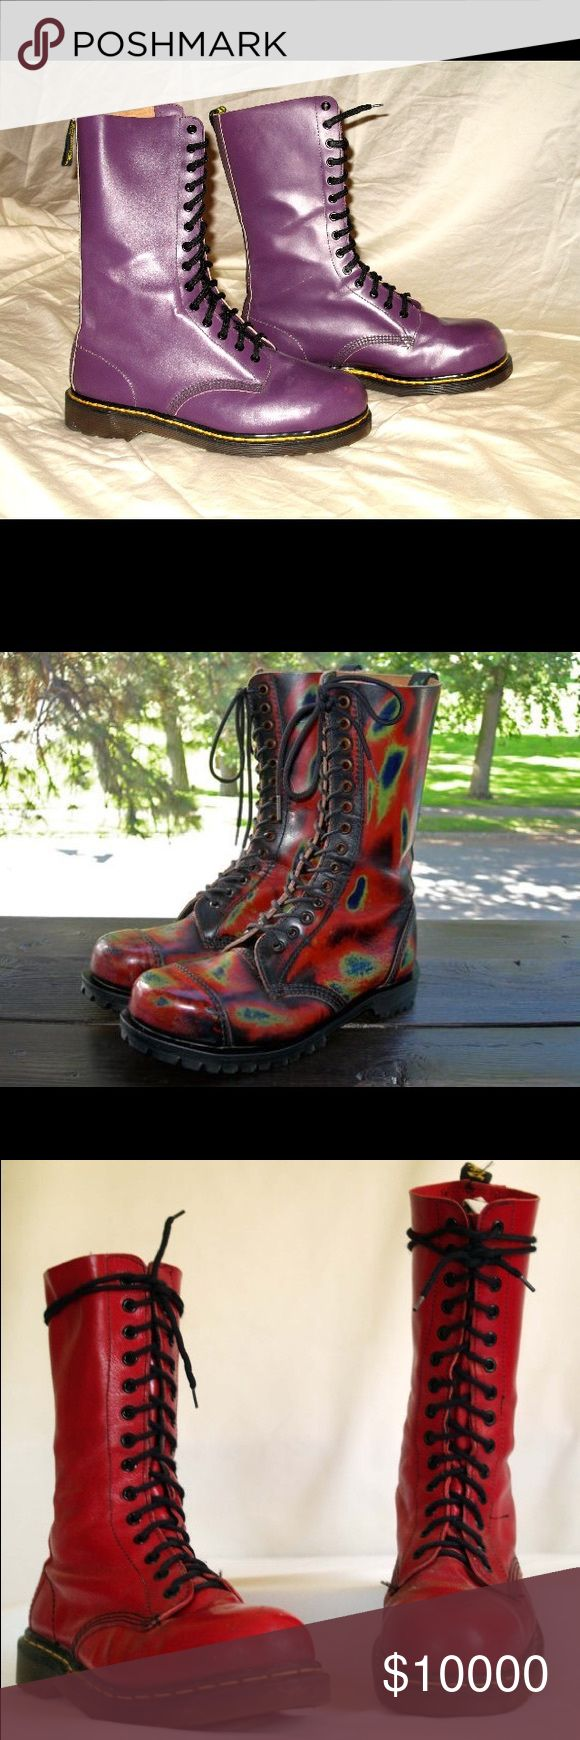 """ISO Dr Martens 1914 14 eye boots MIE UK 7 or 8 Looking for vintage Docs in a unisex UK 7 or 8 (interior insoles need to be 10.5""""). Prefer Made in England's, except for variations like Crazy Bombs or Rub-offs that weren't MIE. No new 1914 please, no zippers or cute crap. Looking for Acid apple green, electric blue, red (not burgundy or oxblood) or any other unique variation. Fair price for fair condition. Dr. Martens Shoes Combat & Moto Boots"""